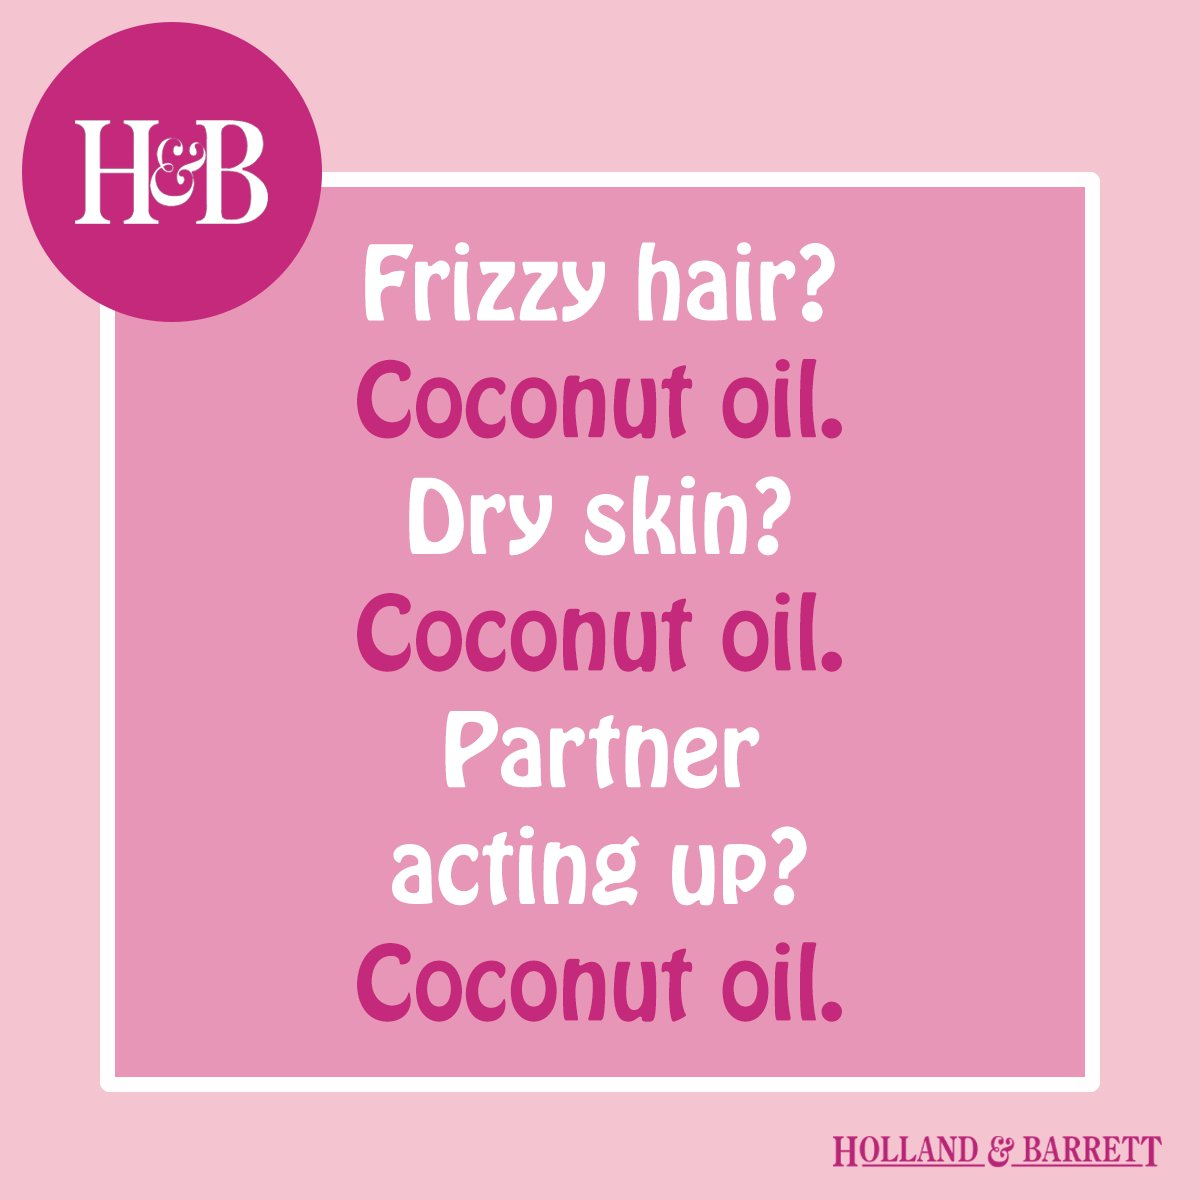 #CoconutOil...we use it for everything. Well, almost everything! https://t.co/KONZHqeJlE https://t.co/4C9OF3OCcl